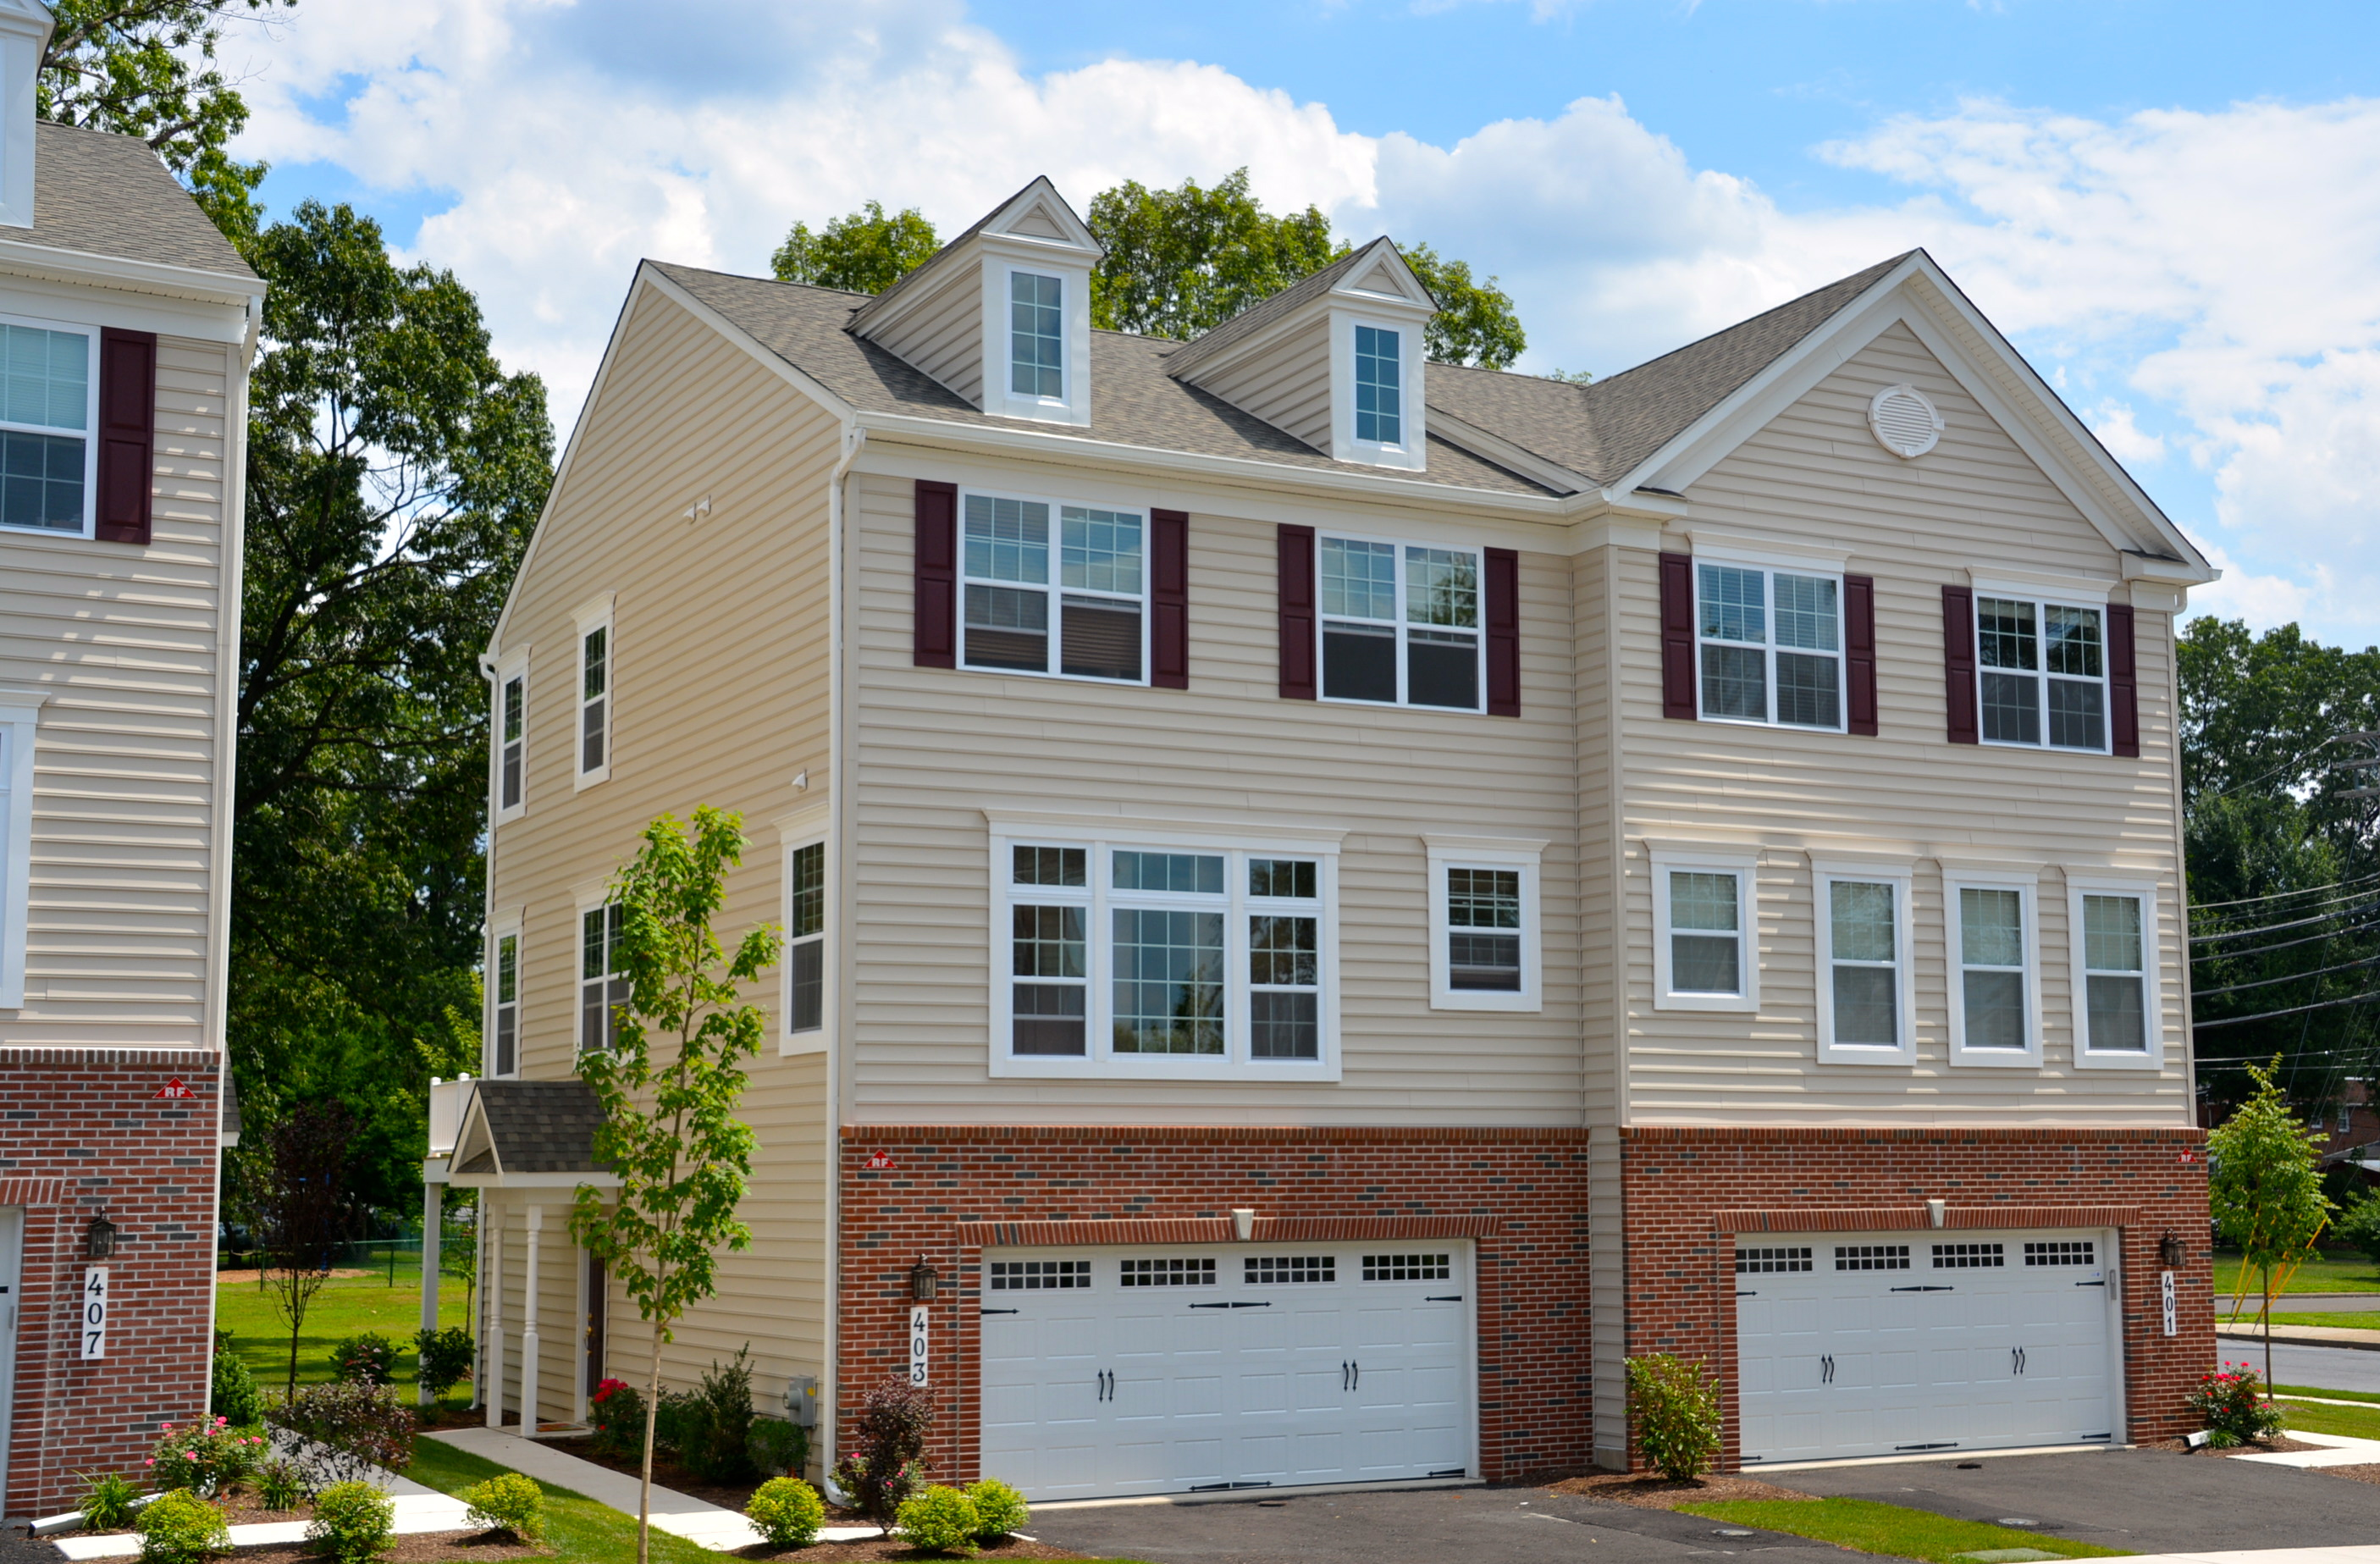 Carillon Hill by W.B. Homes image 8